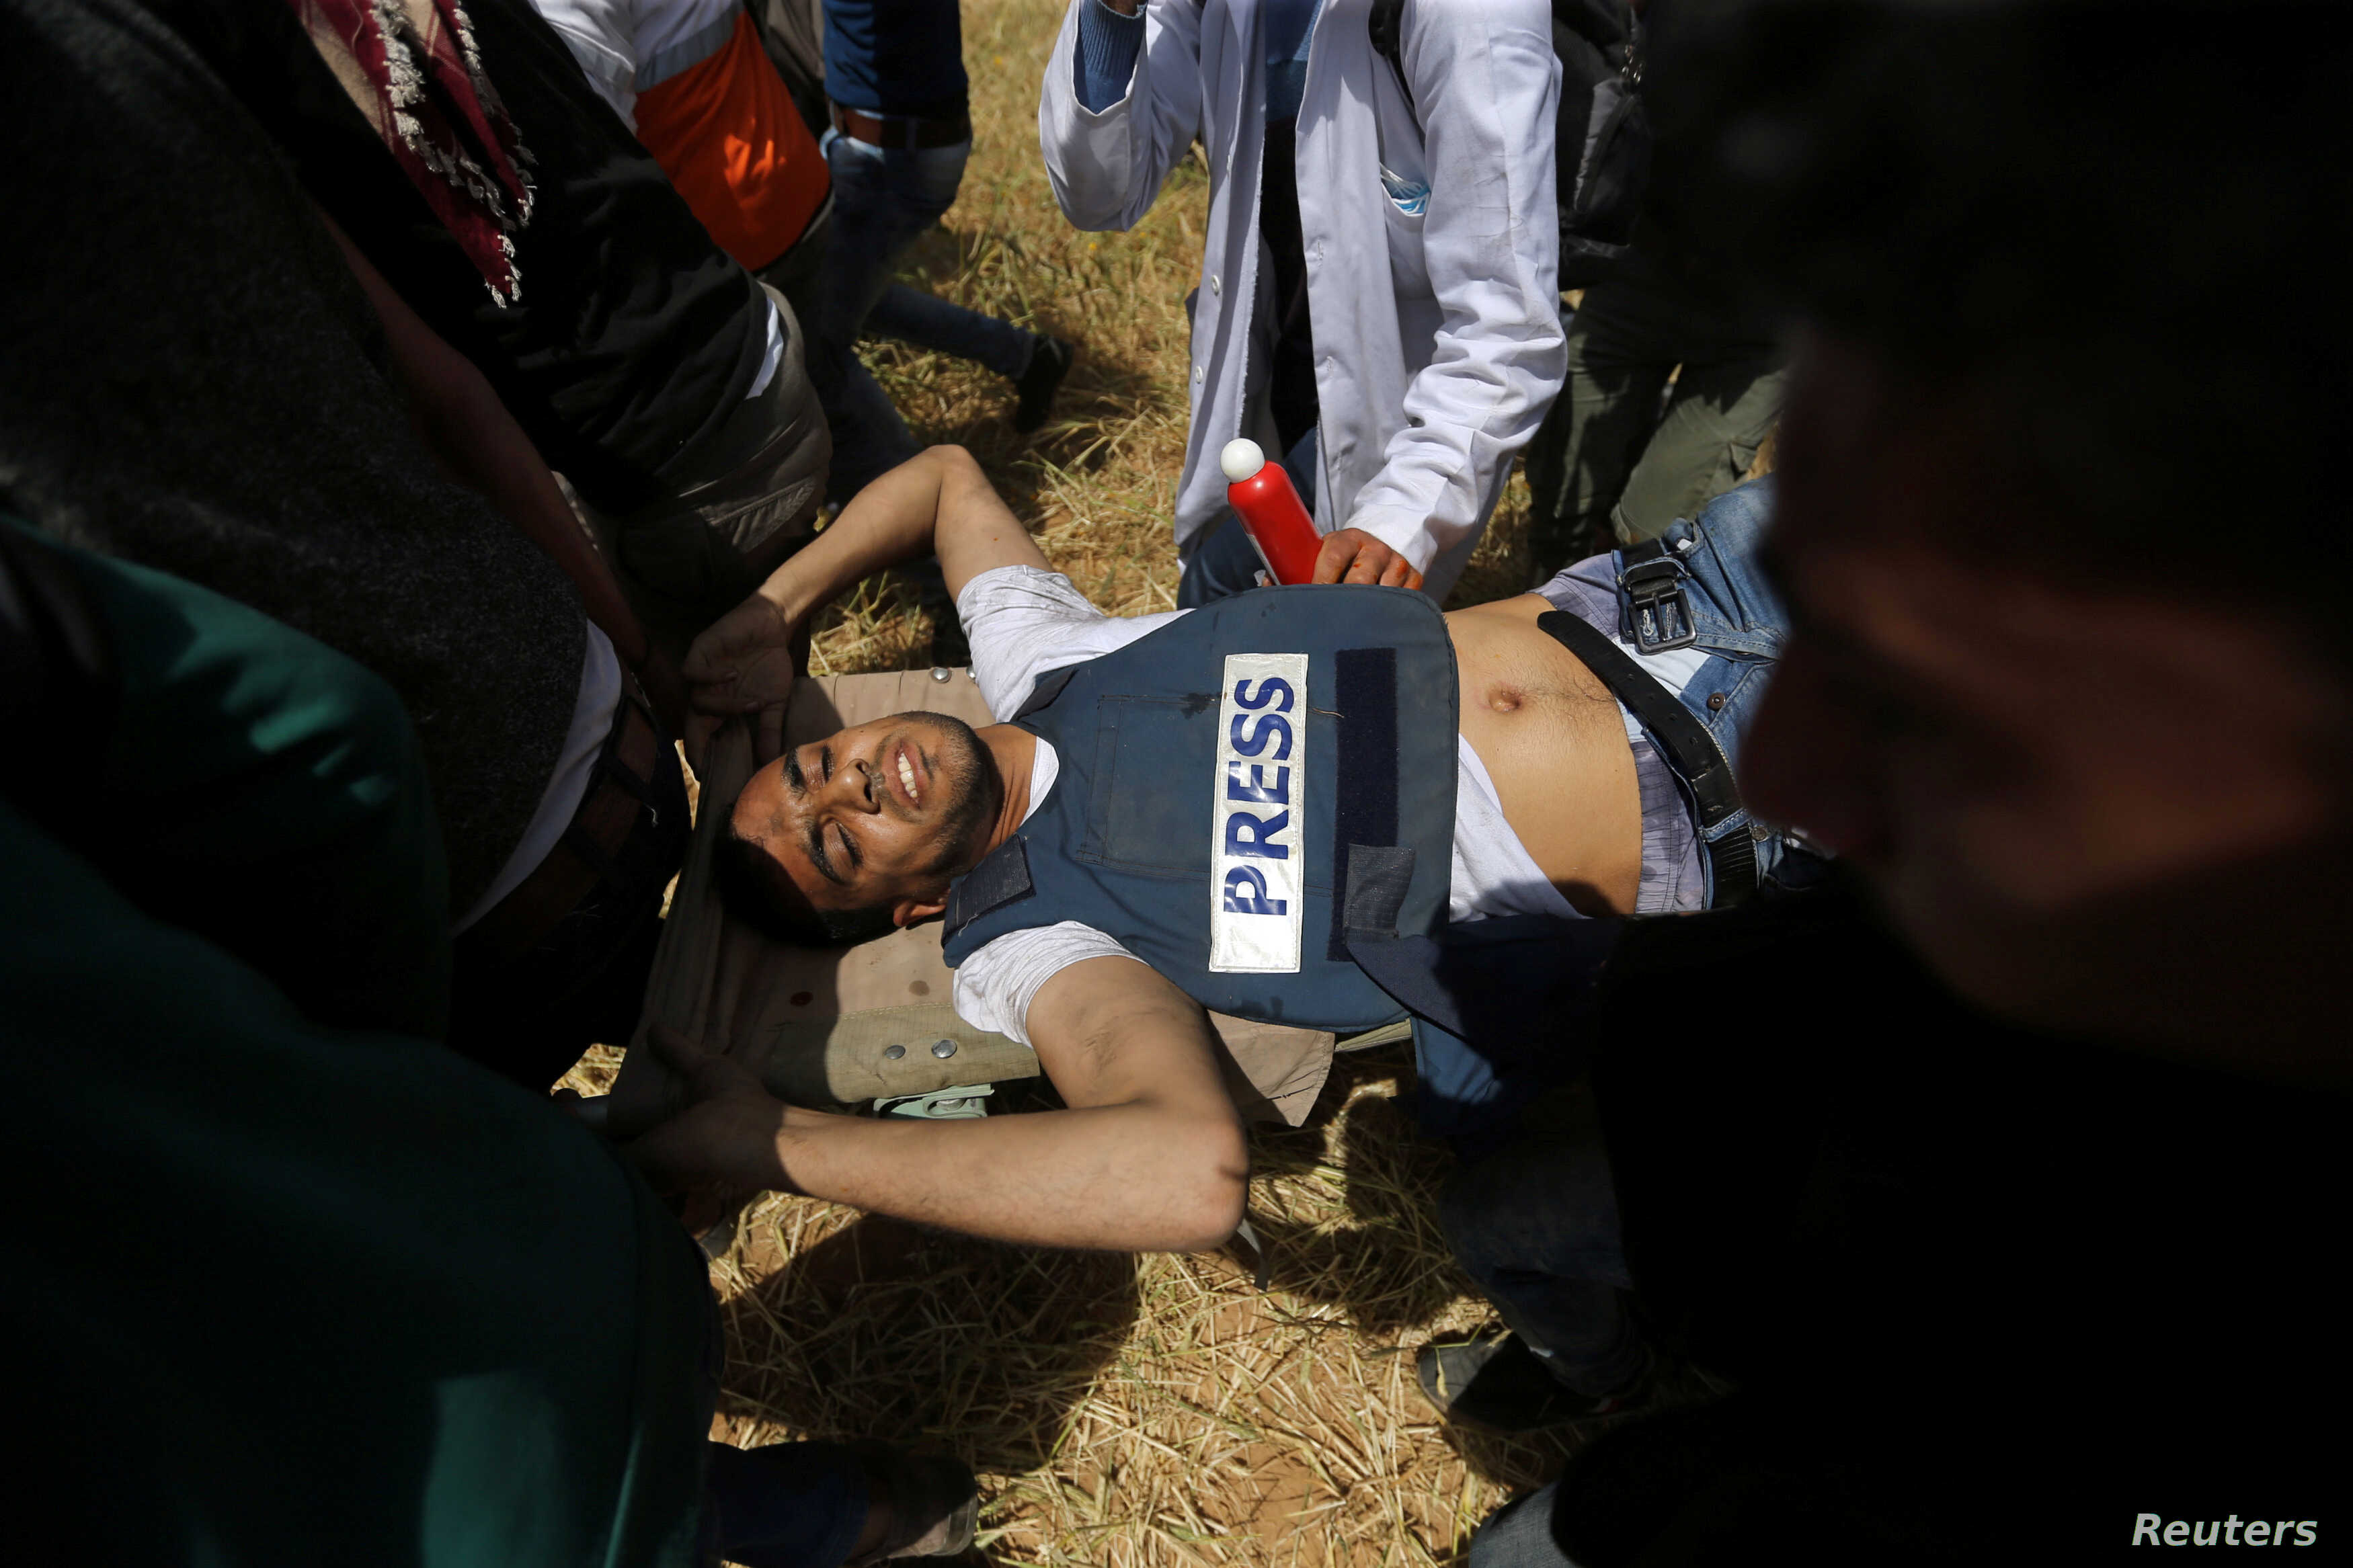 Palestinians evacuate a wounded journalist during clashes with Israeli troops at the Israel-Gaza border at a protest demanding the right to return to their homeland, in the southern Gaza Strip April 6, 2018.